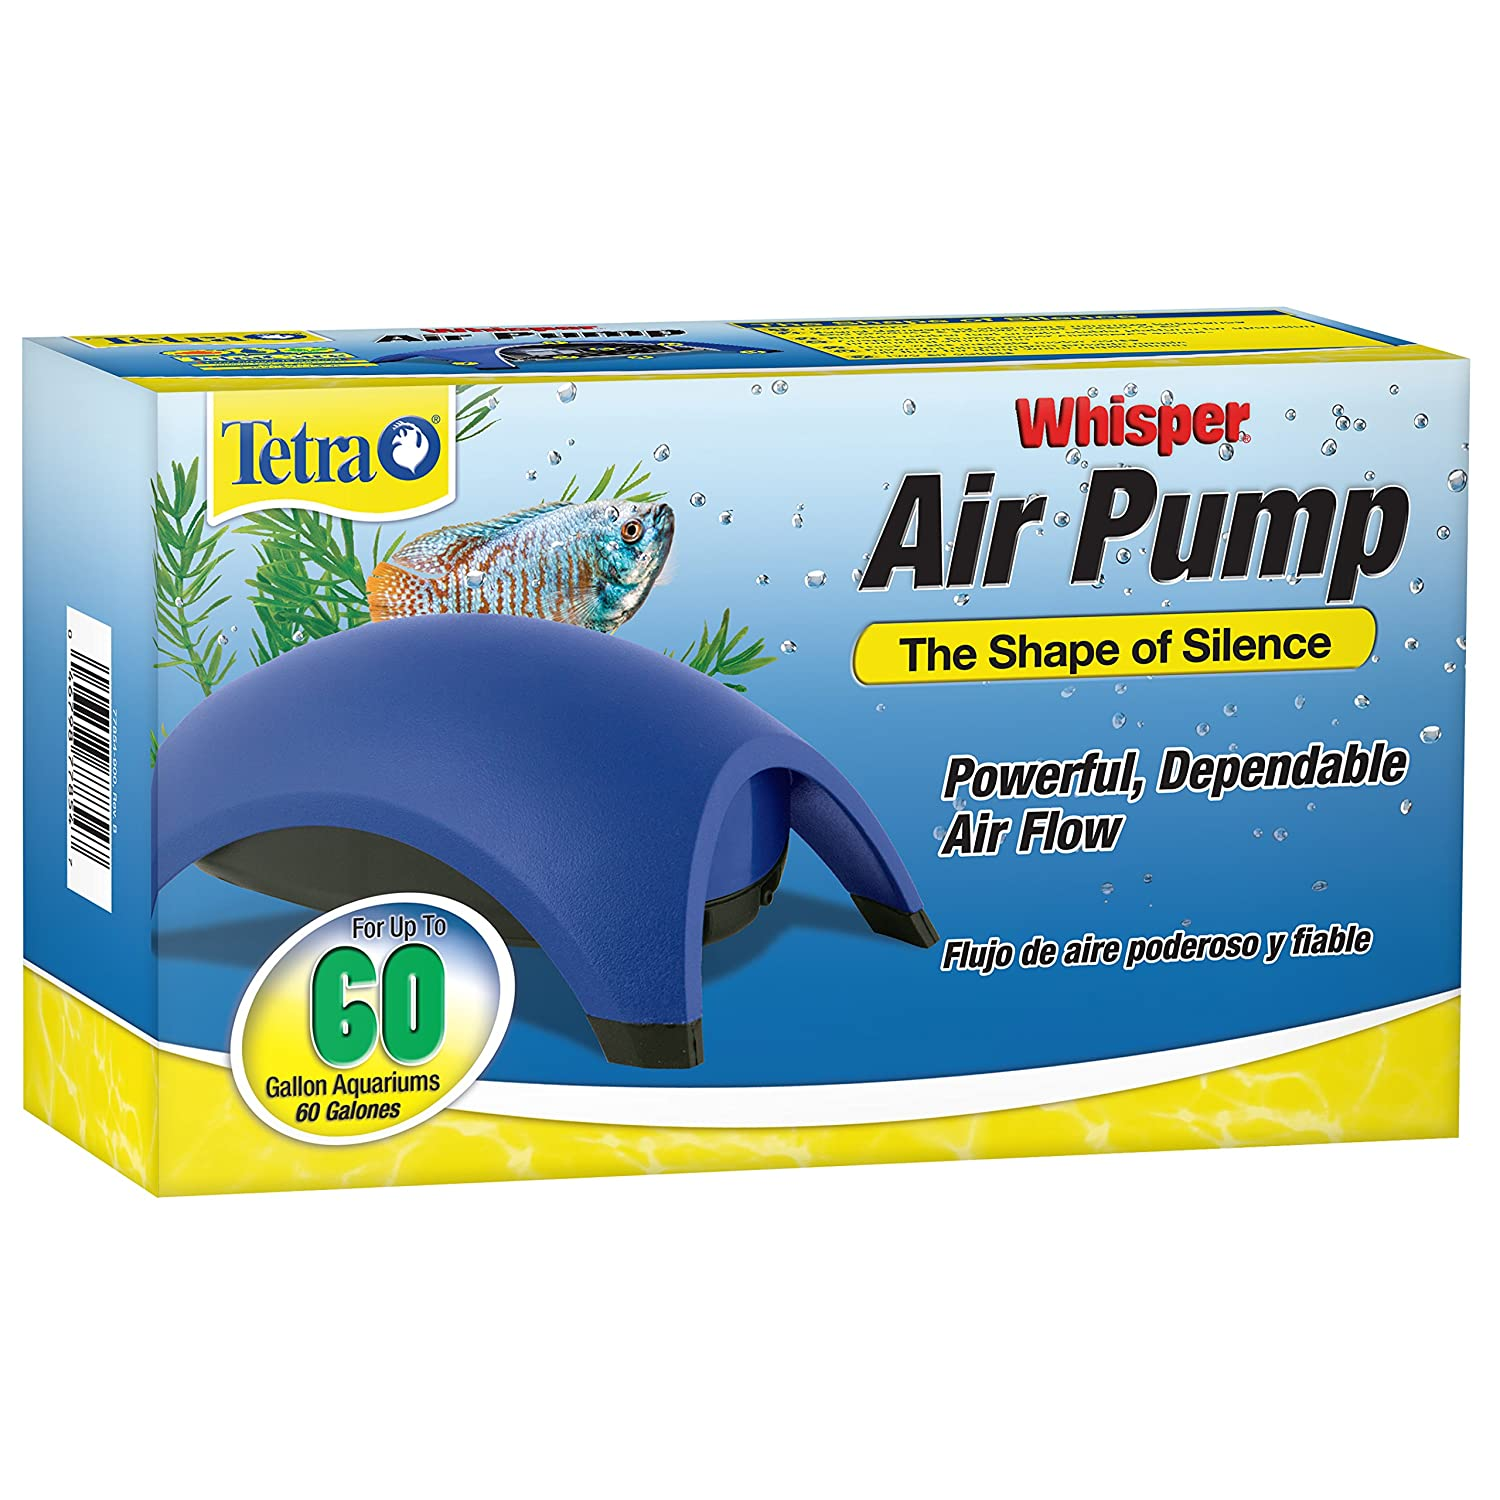 91AxwZ6ke4L._SL1500_ amazon com tetra 77851 whisper air pump, 10 gallon aquarium  at creativeand.co